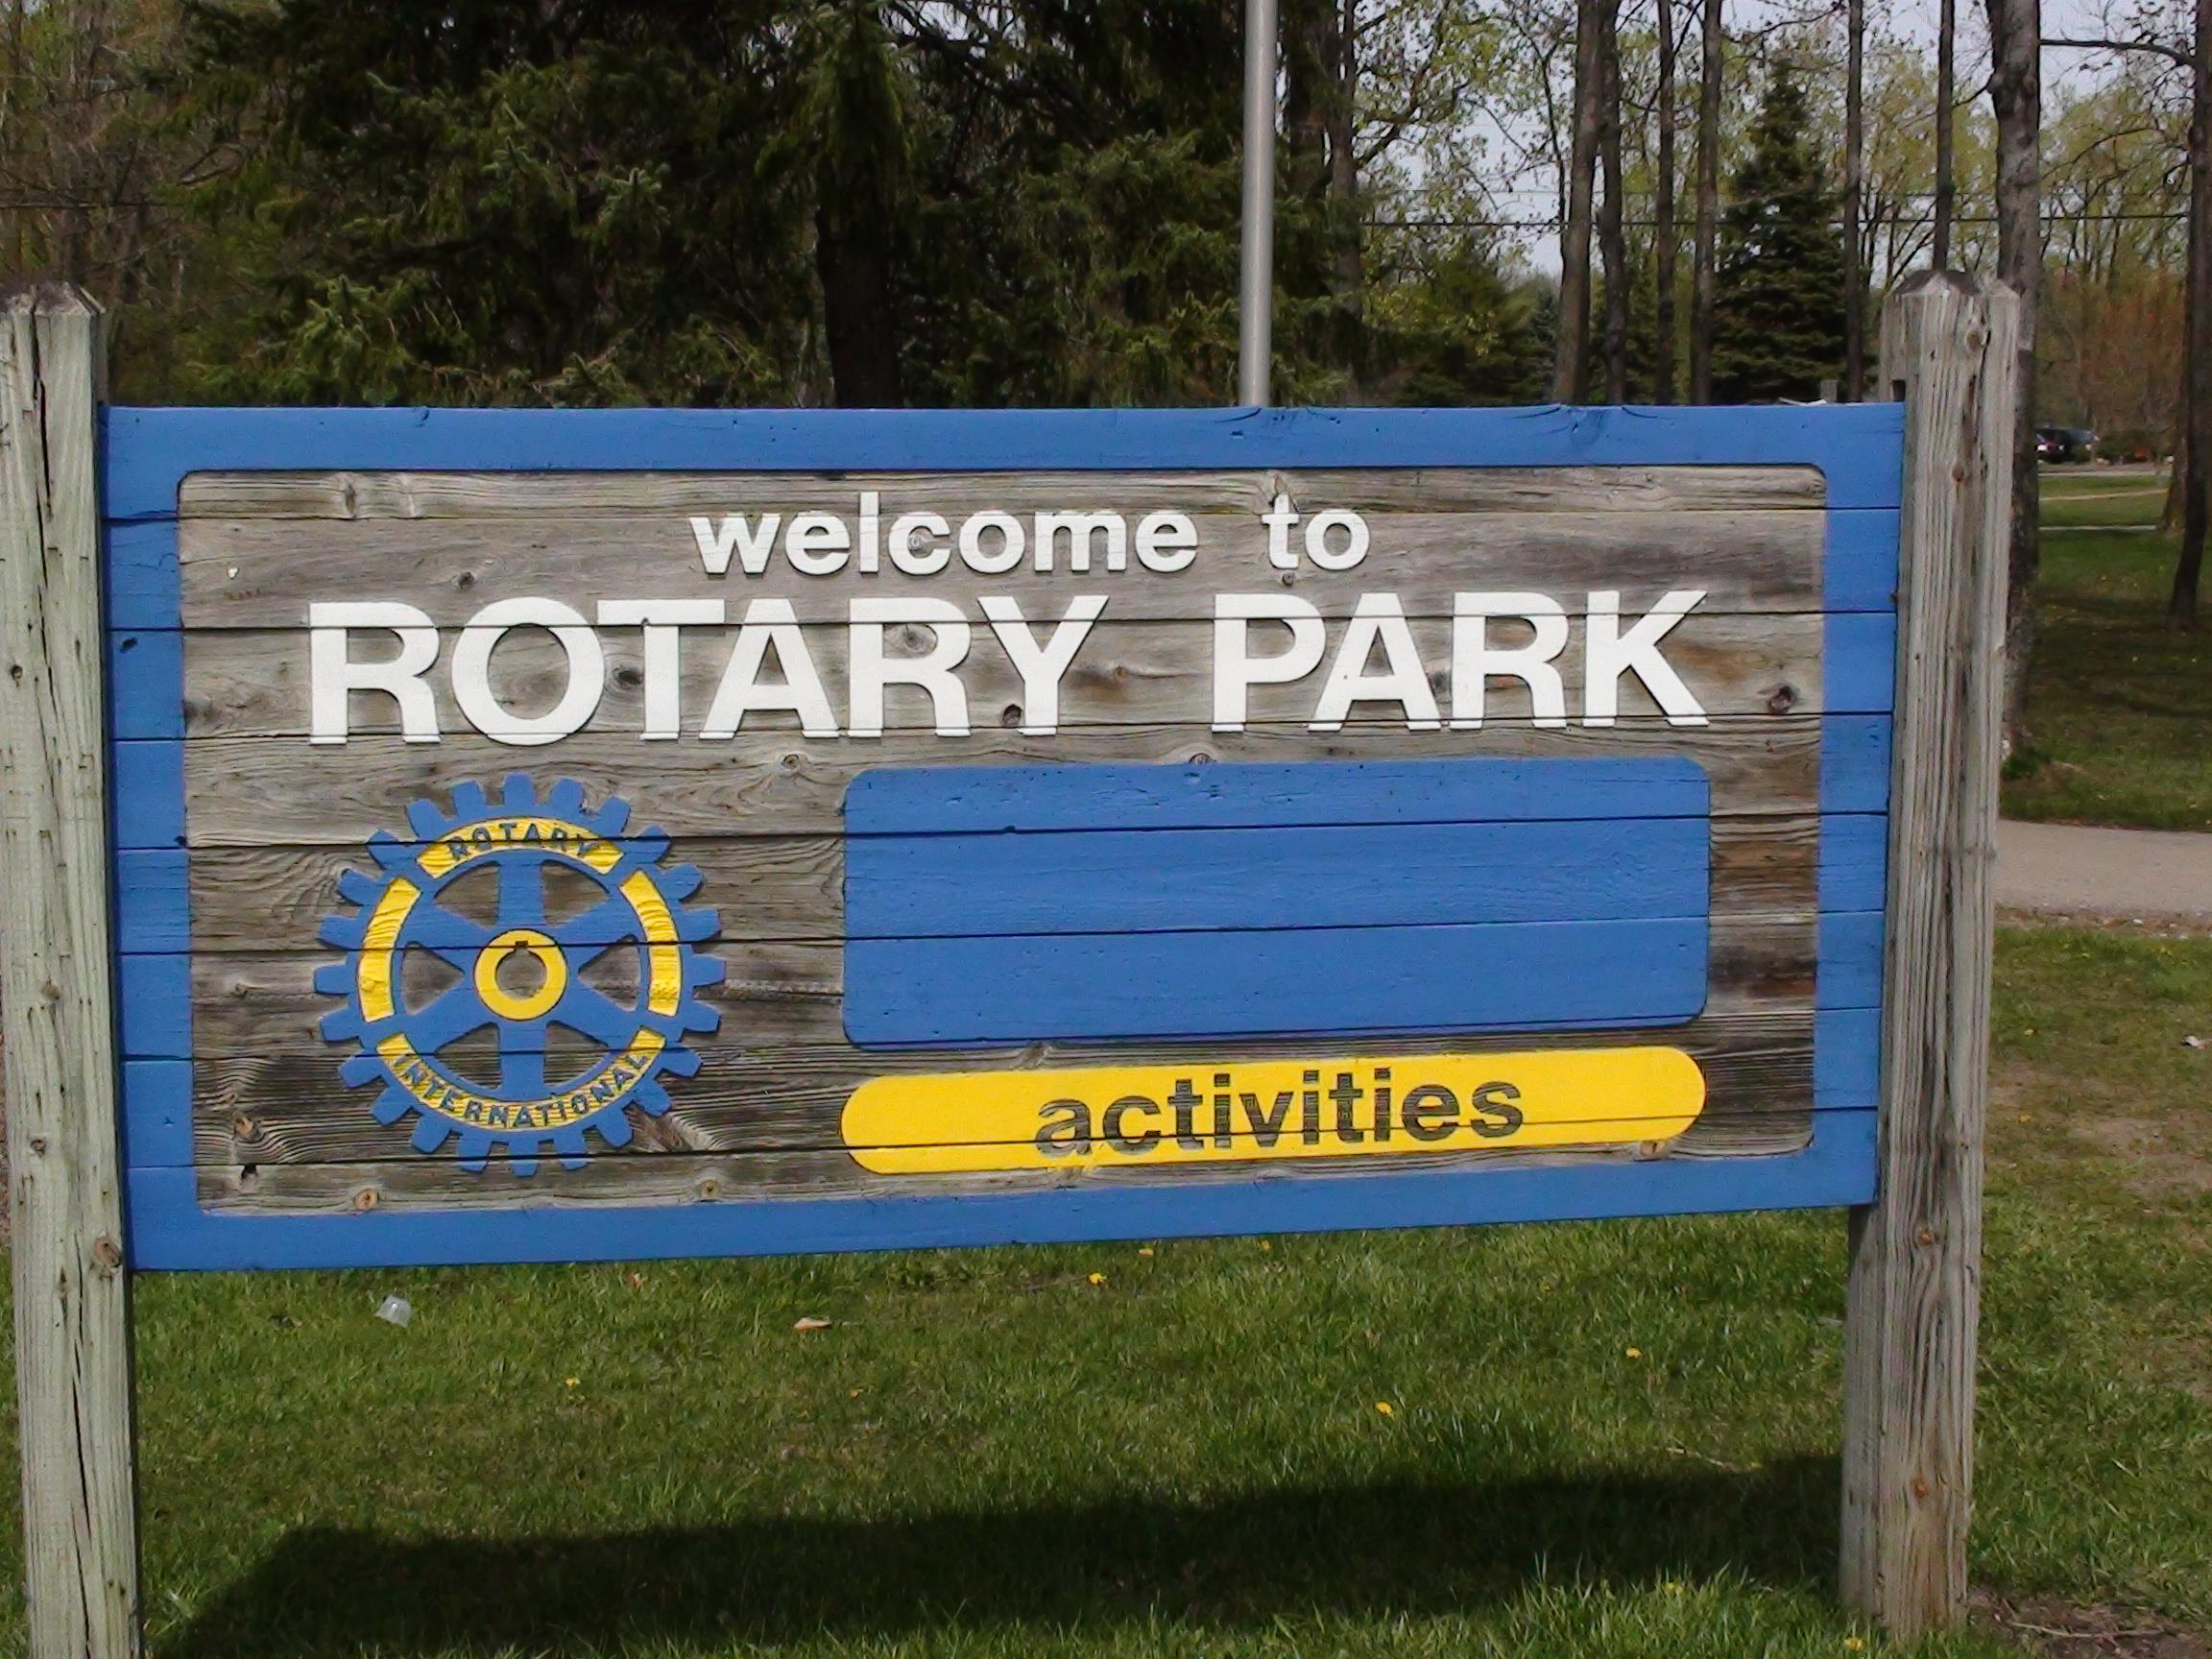 Rotary Park Livonia Michigan